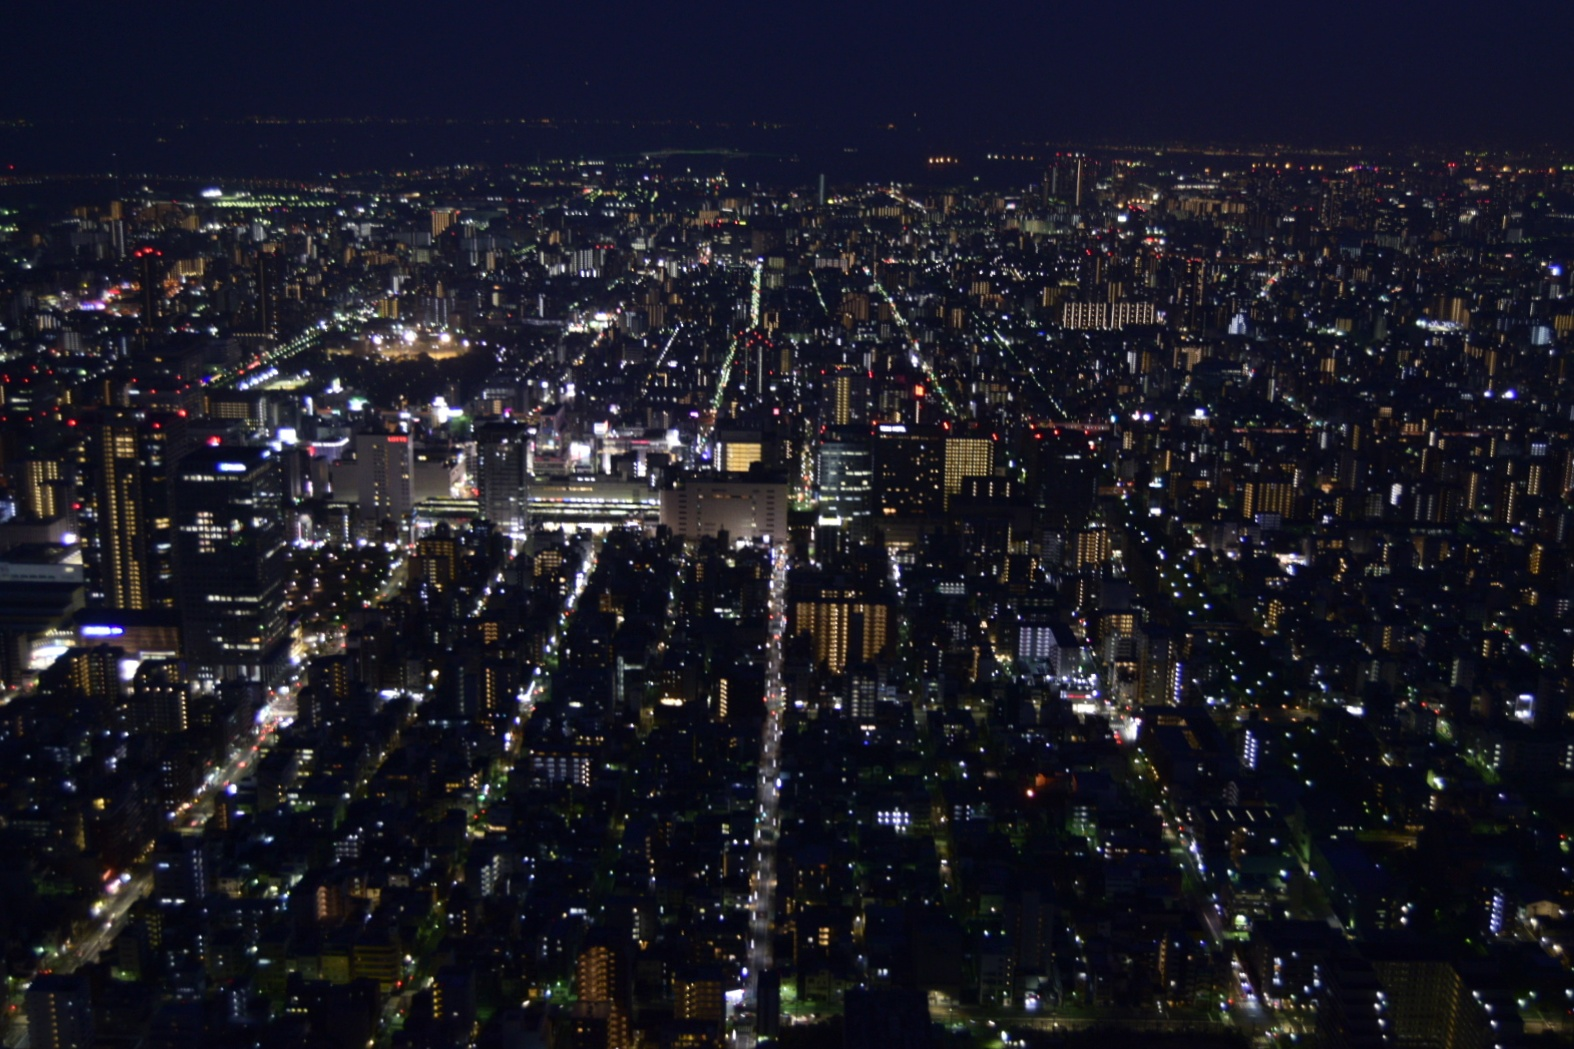 View from Skytree Tower